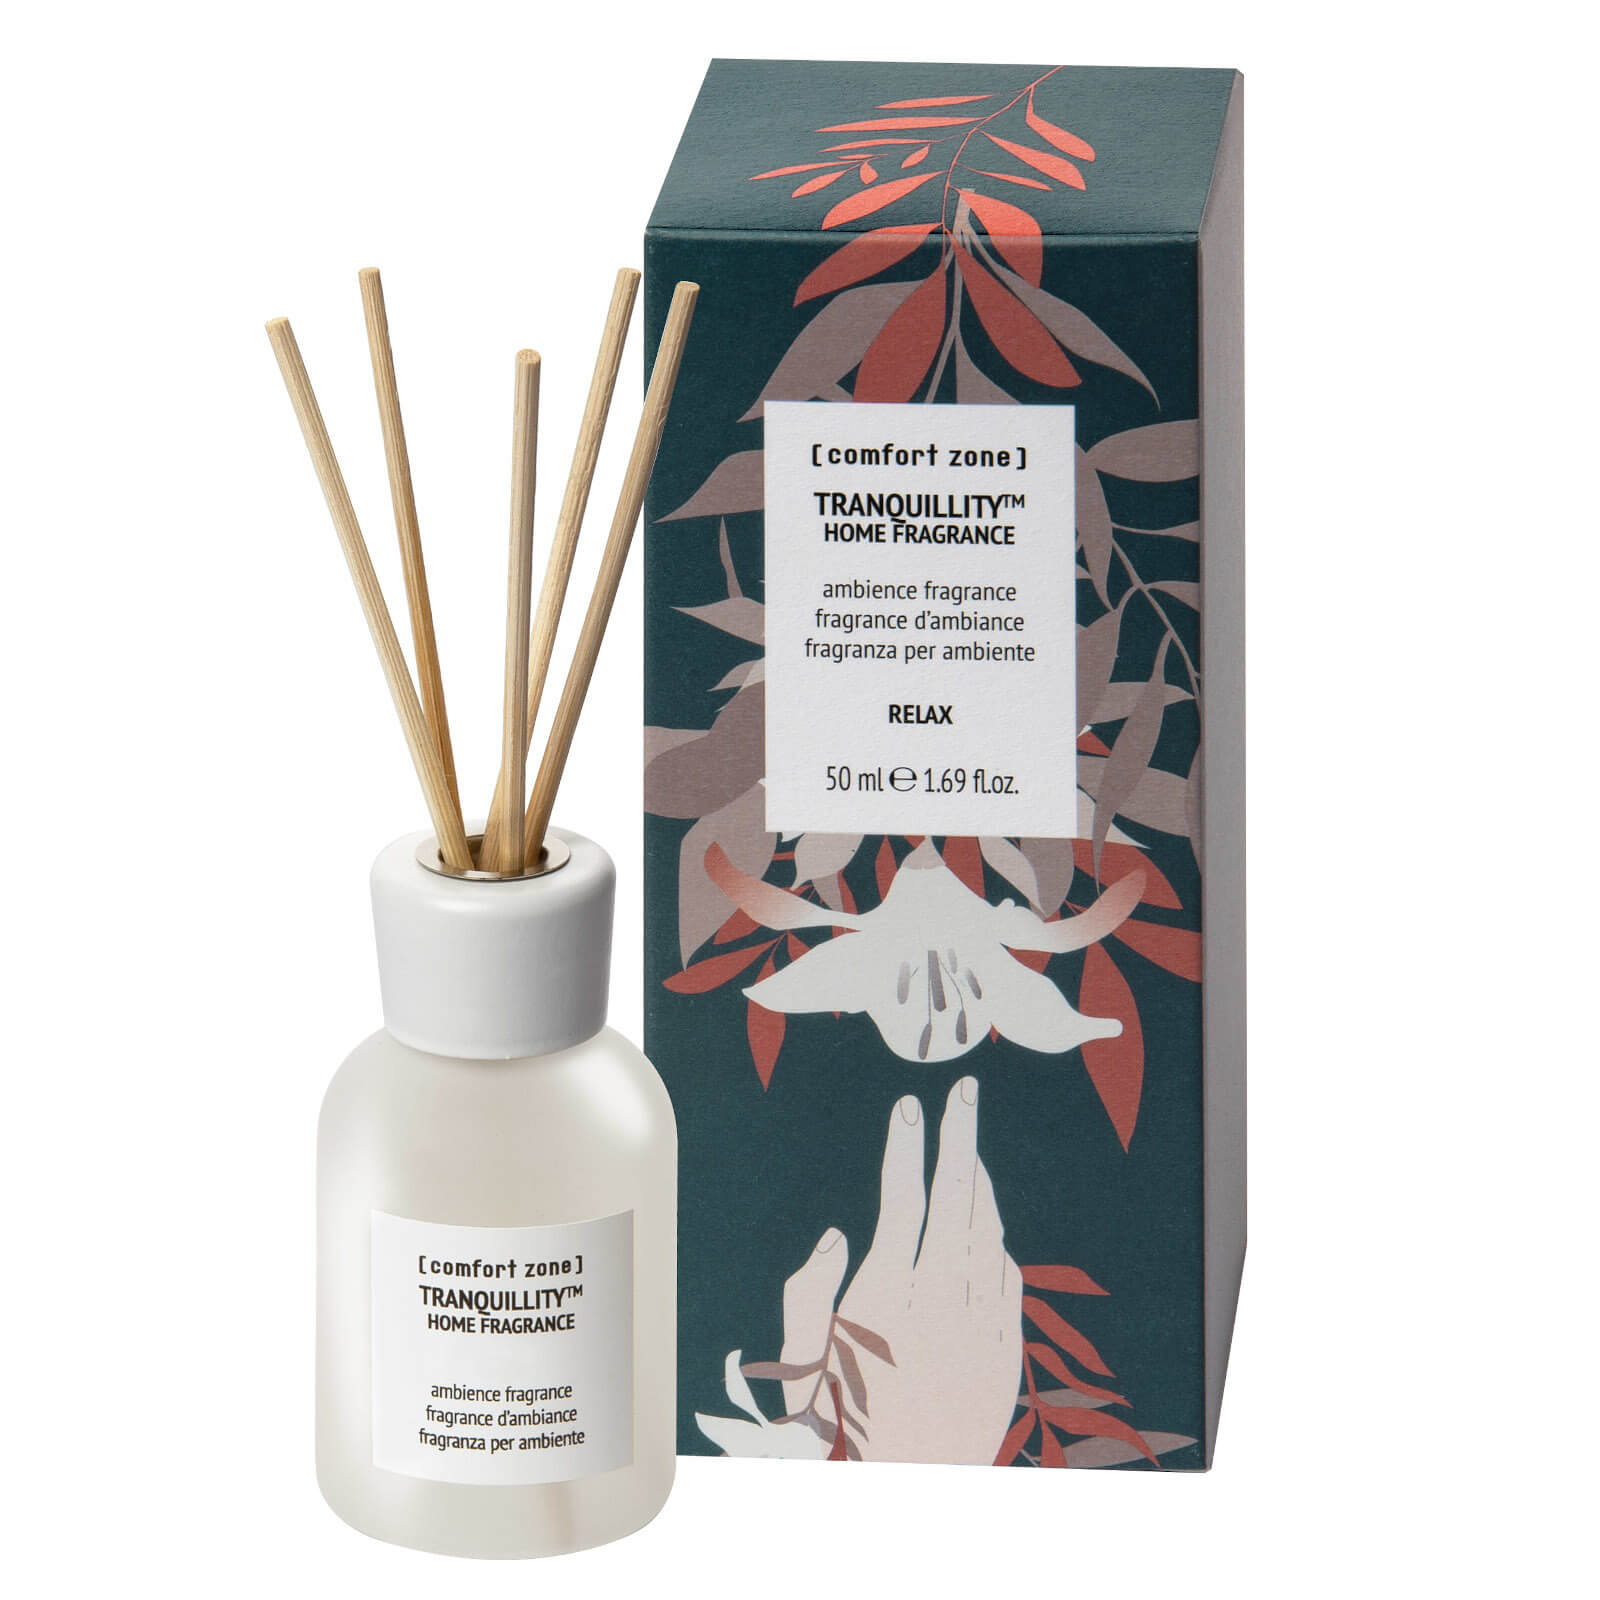 Tranquility Home Fragrance 50ml